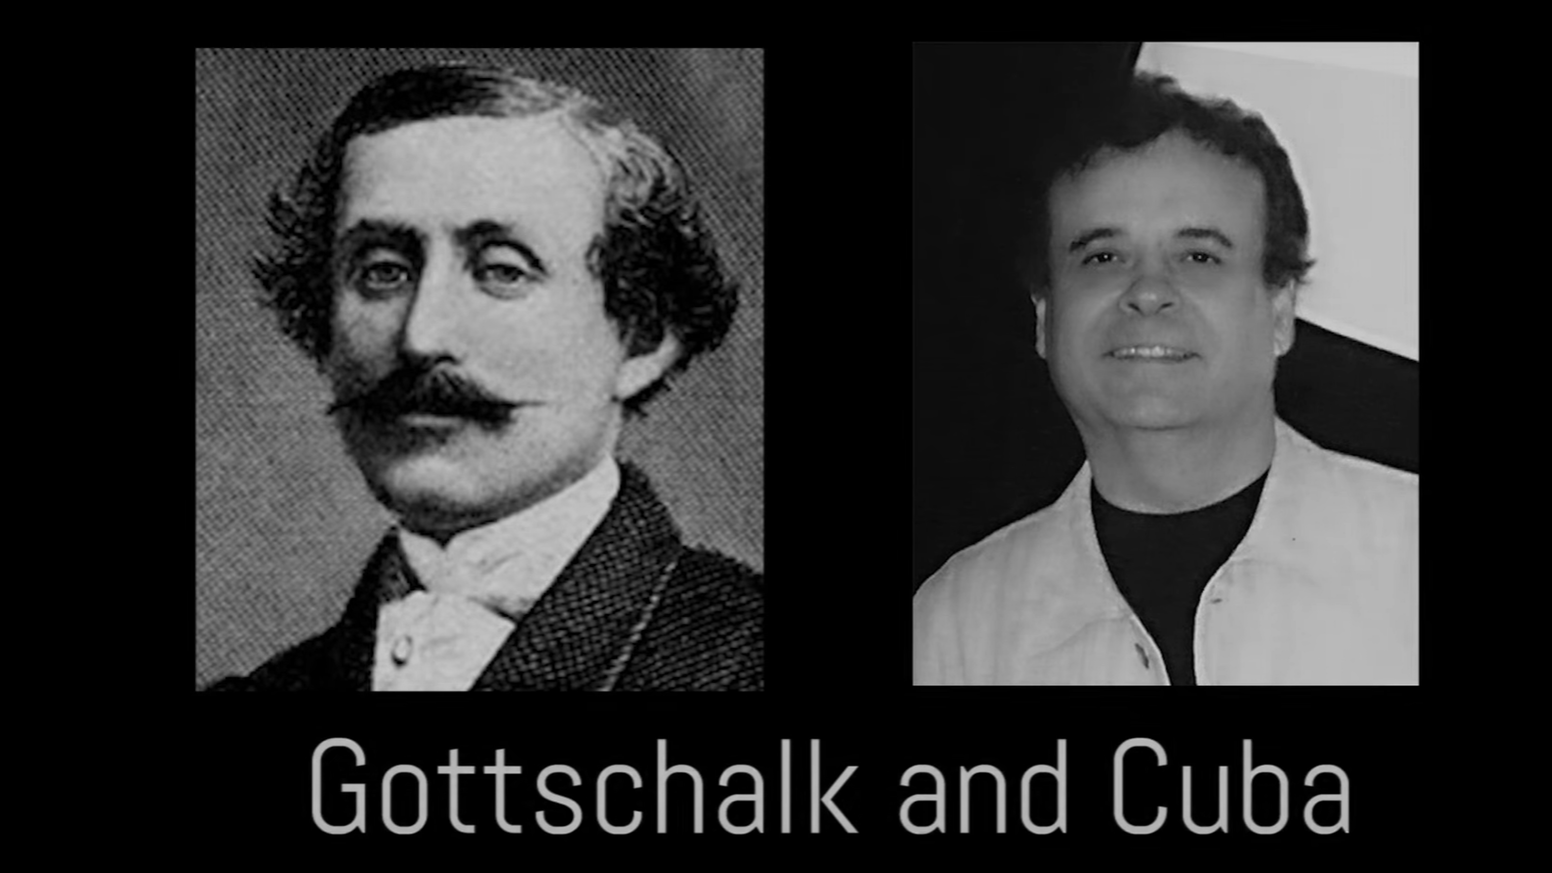 Antonio and Gottschalk.png